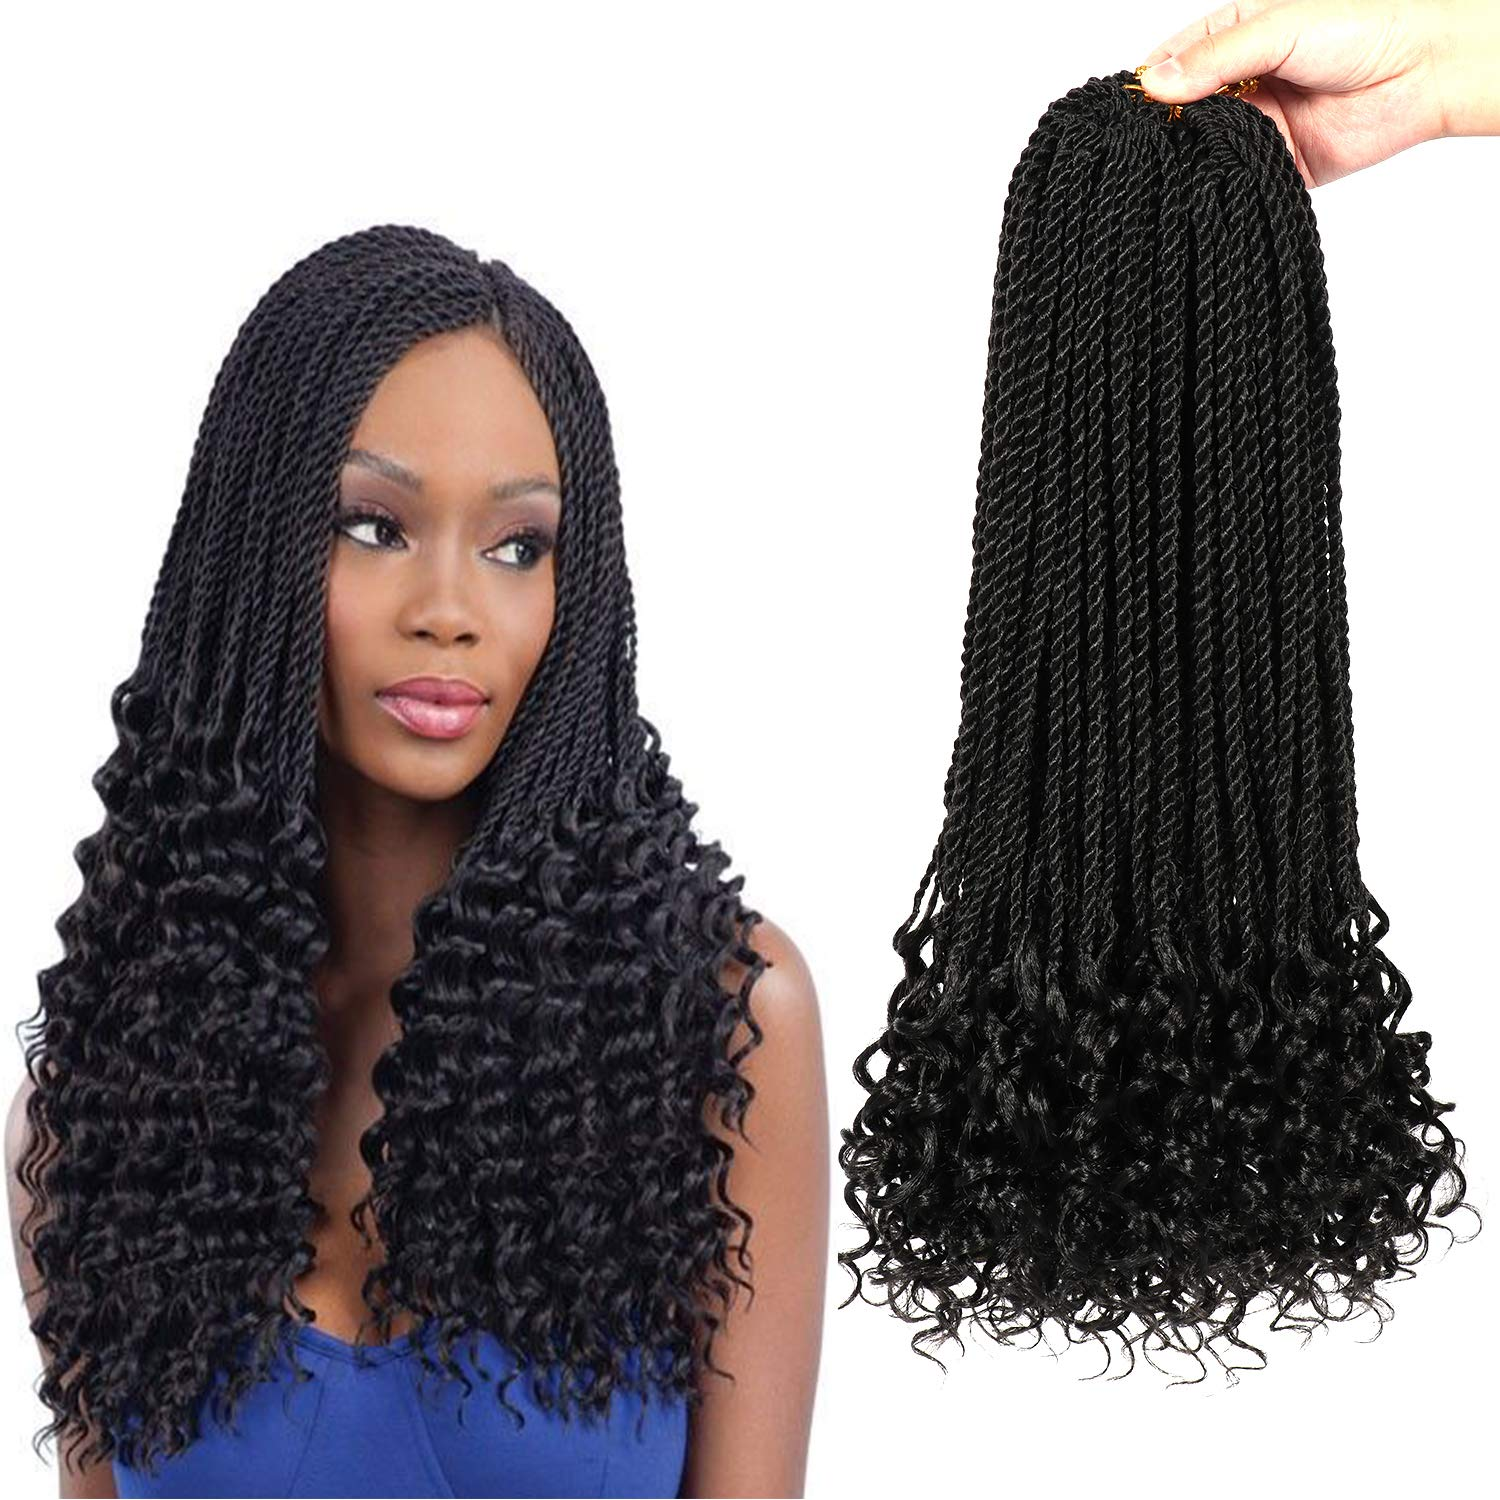 7 Packs Senegalese Twist Hair With Curly Ends 18 Inch Crochet Hair Synthetic Kanekalon Fiber Braiding Hair Extension Synthetic Crochet Braids Hair 24